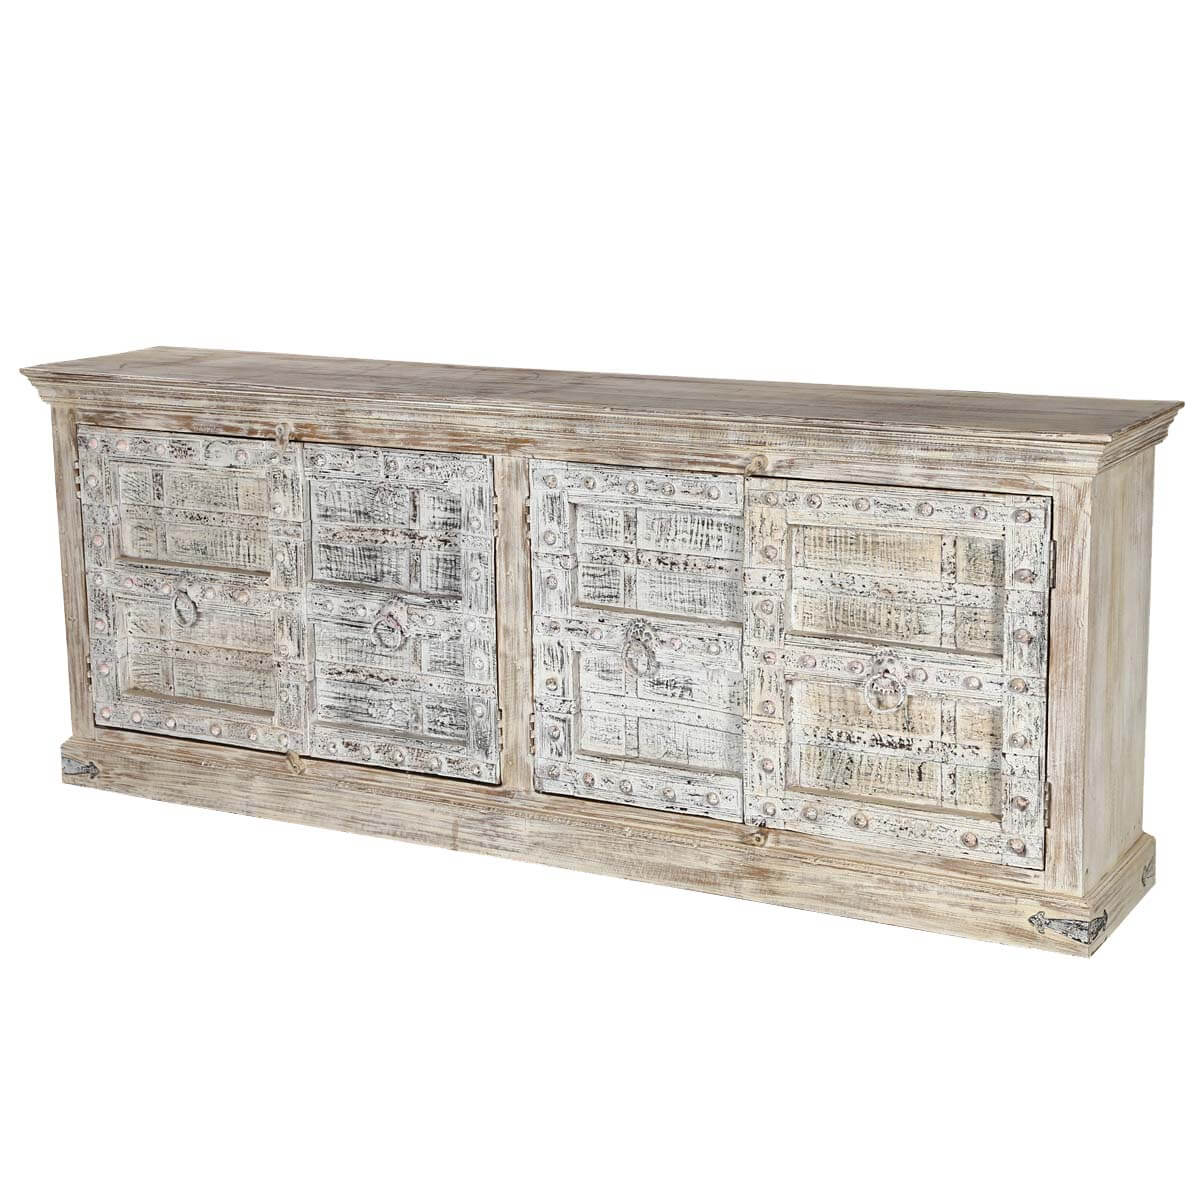 Antonito Gothic Gates Reclaimed Wood Extra Large Buffet Cabinet